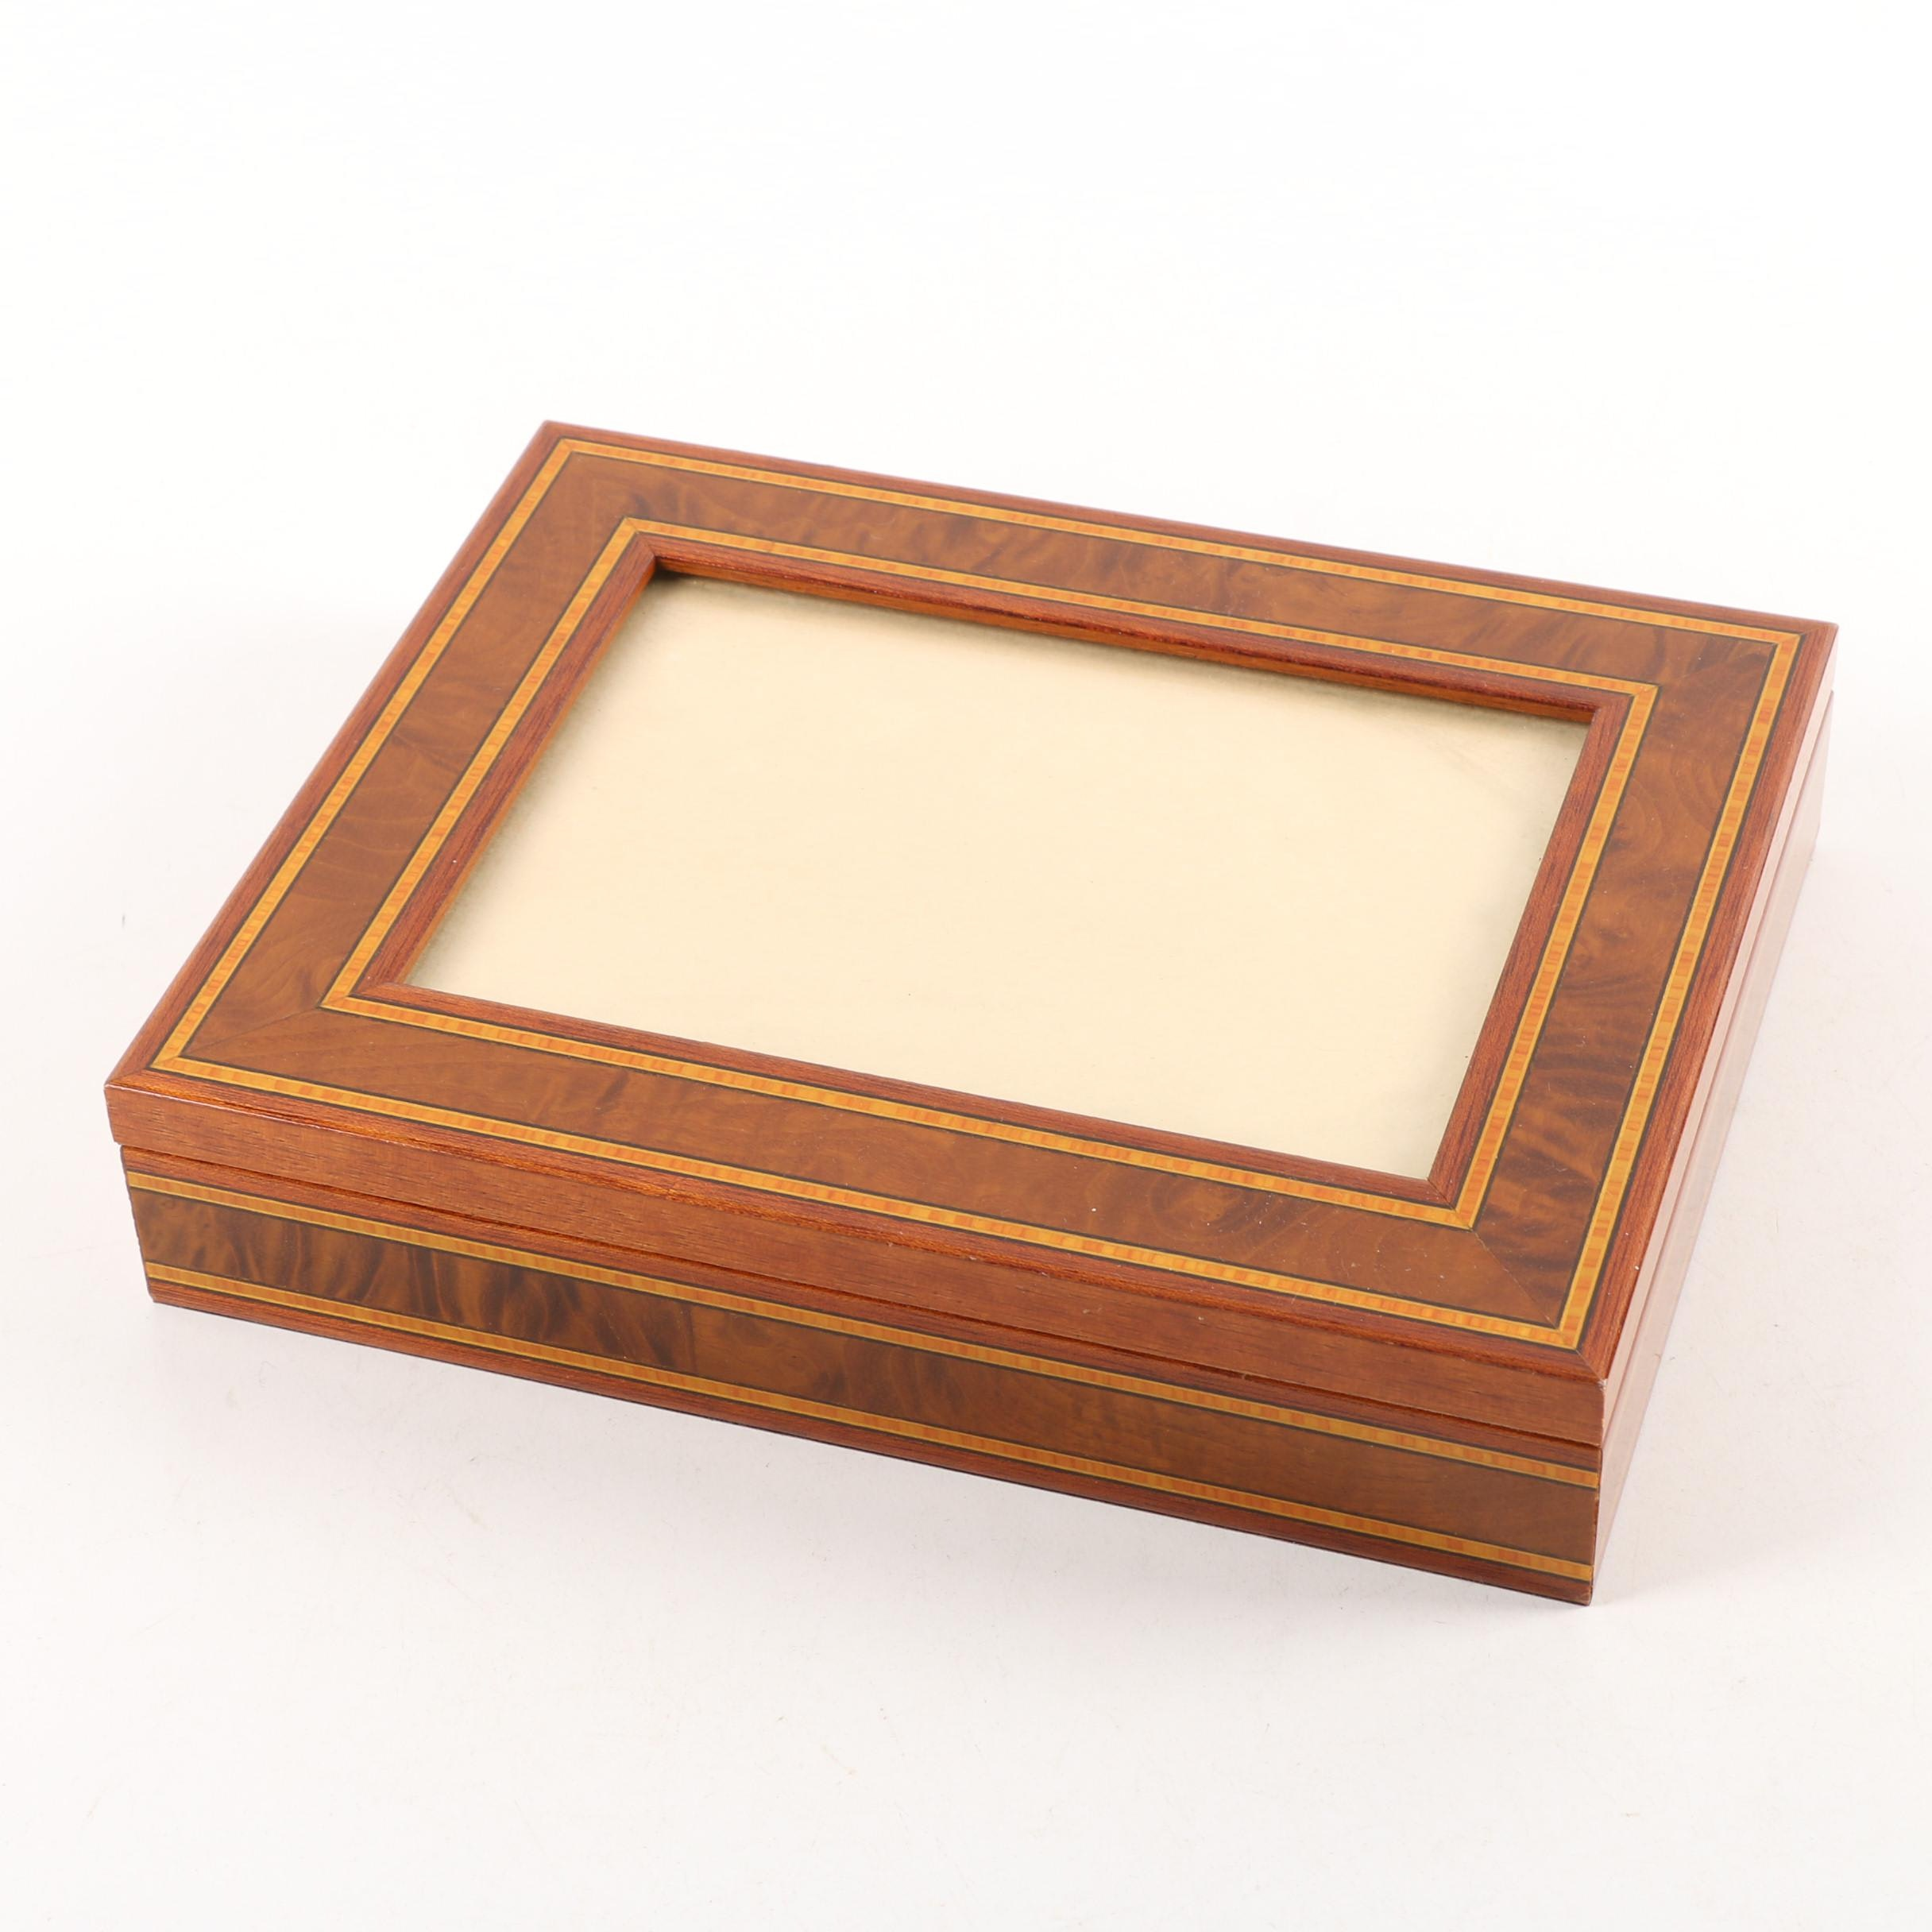 Cnd Paris Marquetry Inlaid Wooden Jewelry Box With Picture Frame